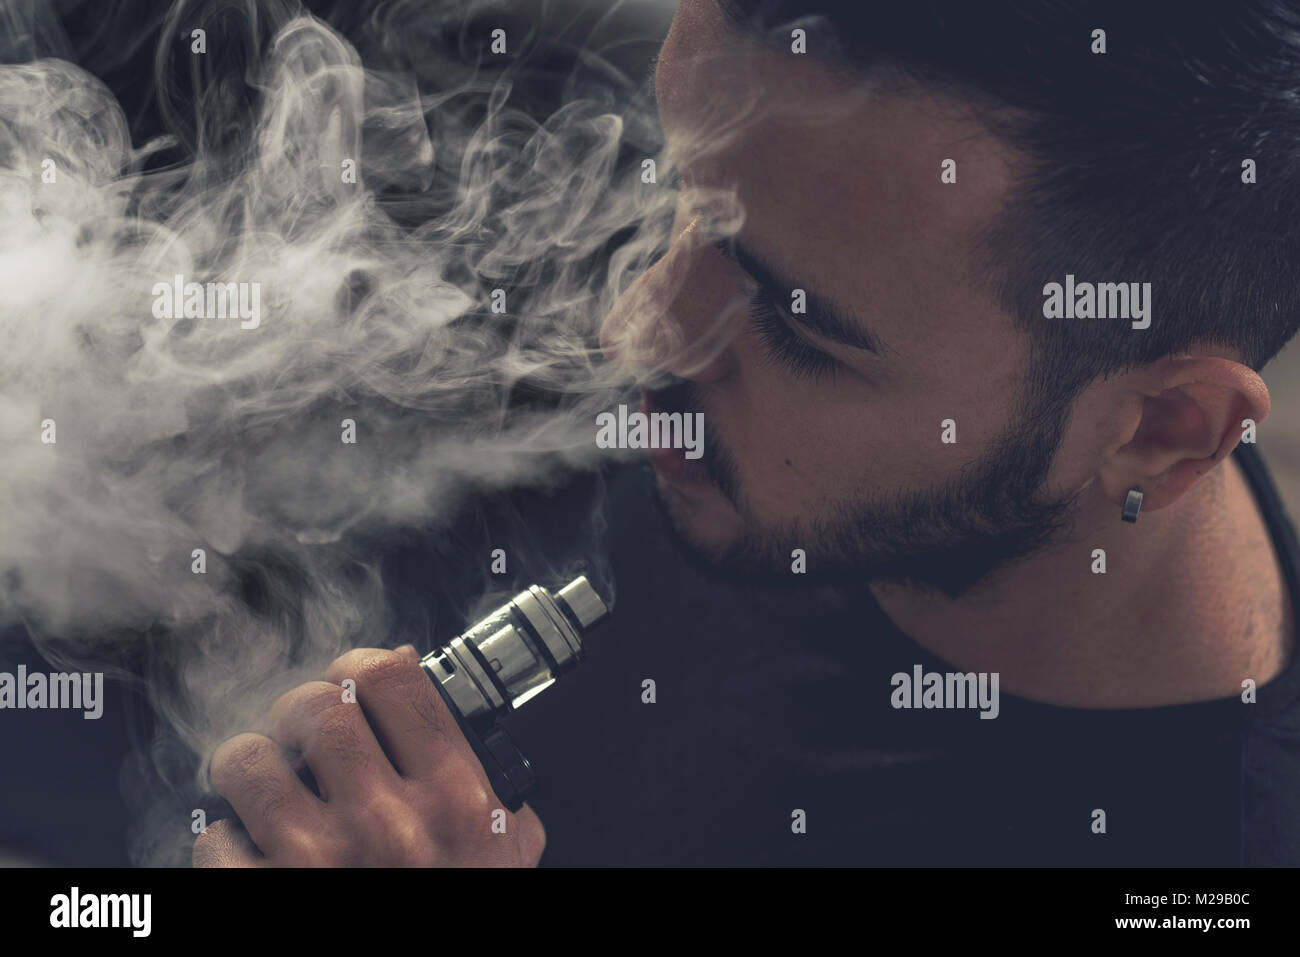 Hand holding an electronic cigarette over a dark background - Stock Image